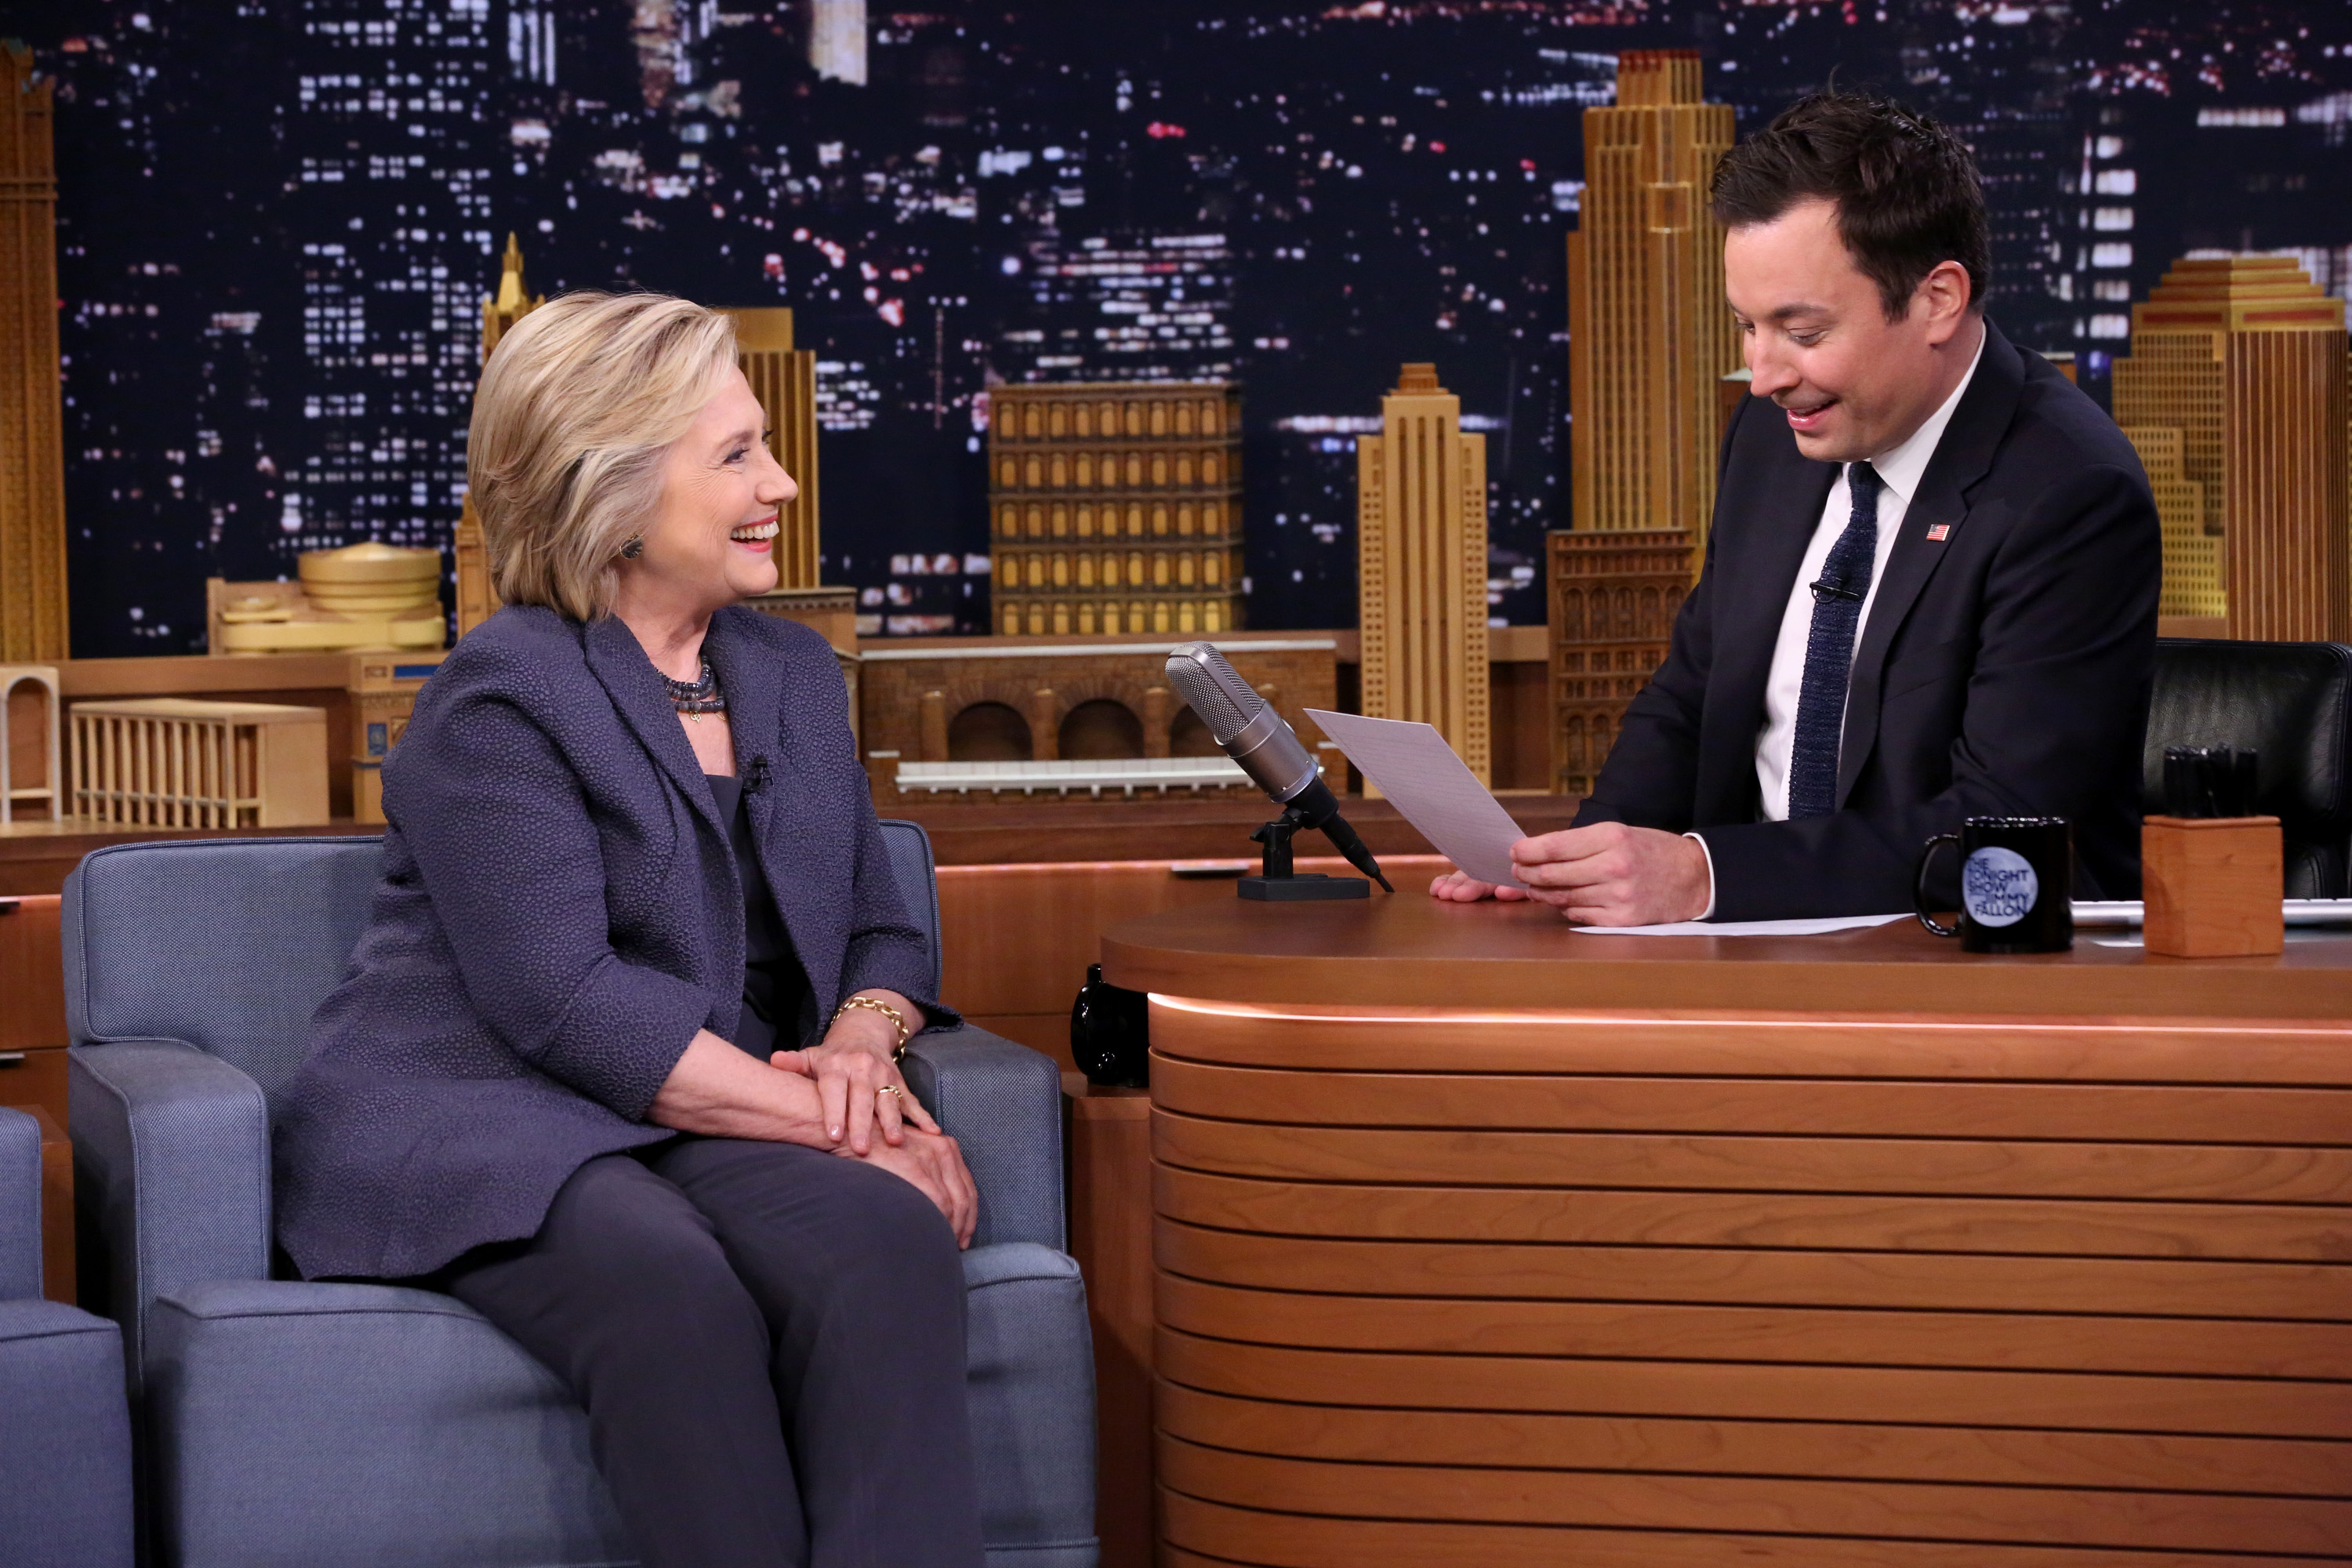 Jimmy Fallon reads kids' letters to Hillary, and it's amazing